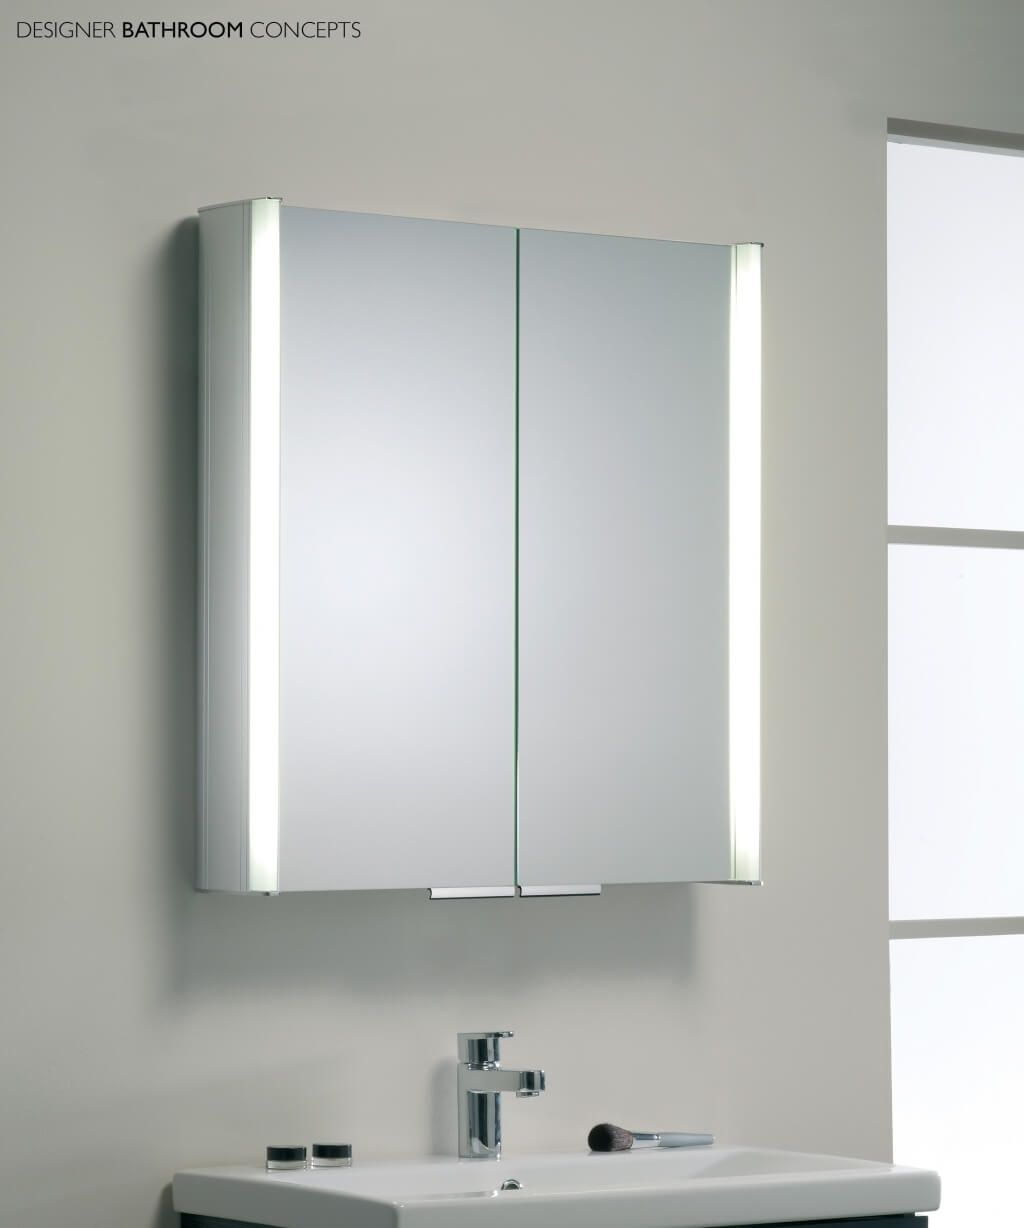 Slim Bathroom Cabinet With Mirror And Light | Bathroom Ideas ... on makeup vanities for bedrooms with lights, surface mount medicine cabinets with lights, bathroom mirror with side lights, bathroom mirrors with lights behind, bathroom mirrors with led lights, large bathroom mirror with lights, bathroom light fixture, bathroom decorating ideas,